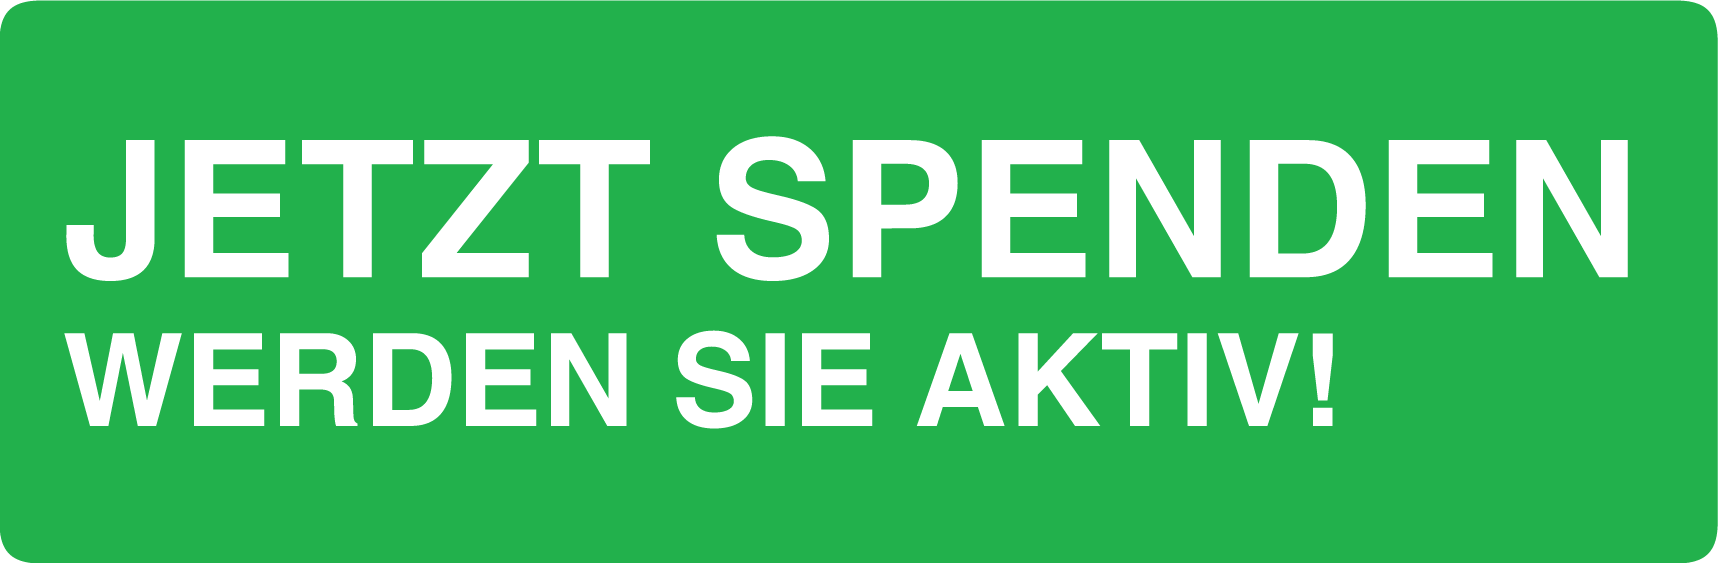 Spendenbutton grün